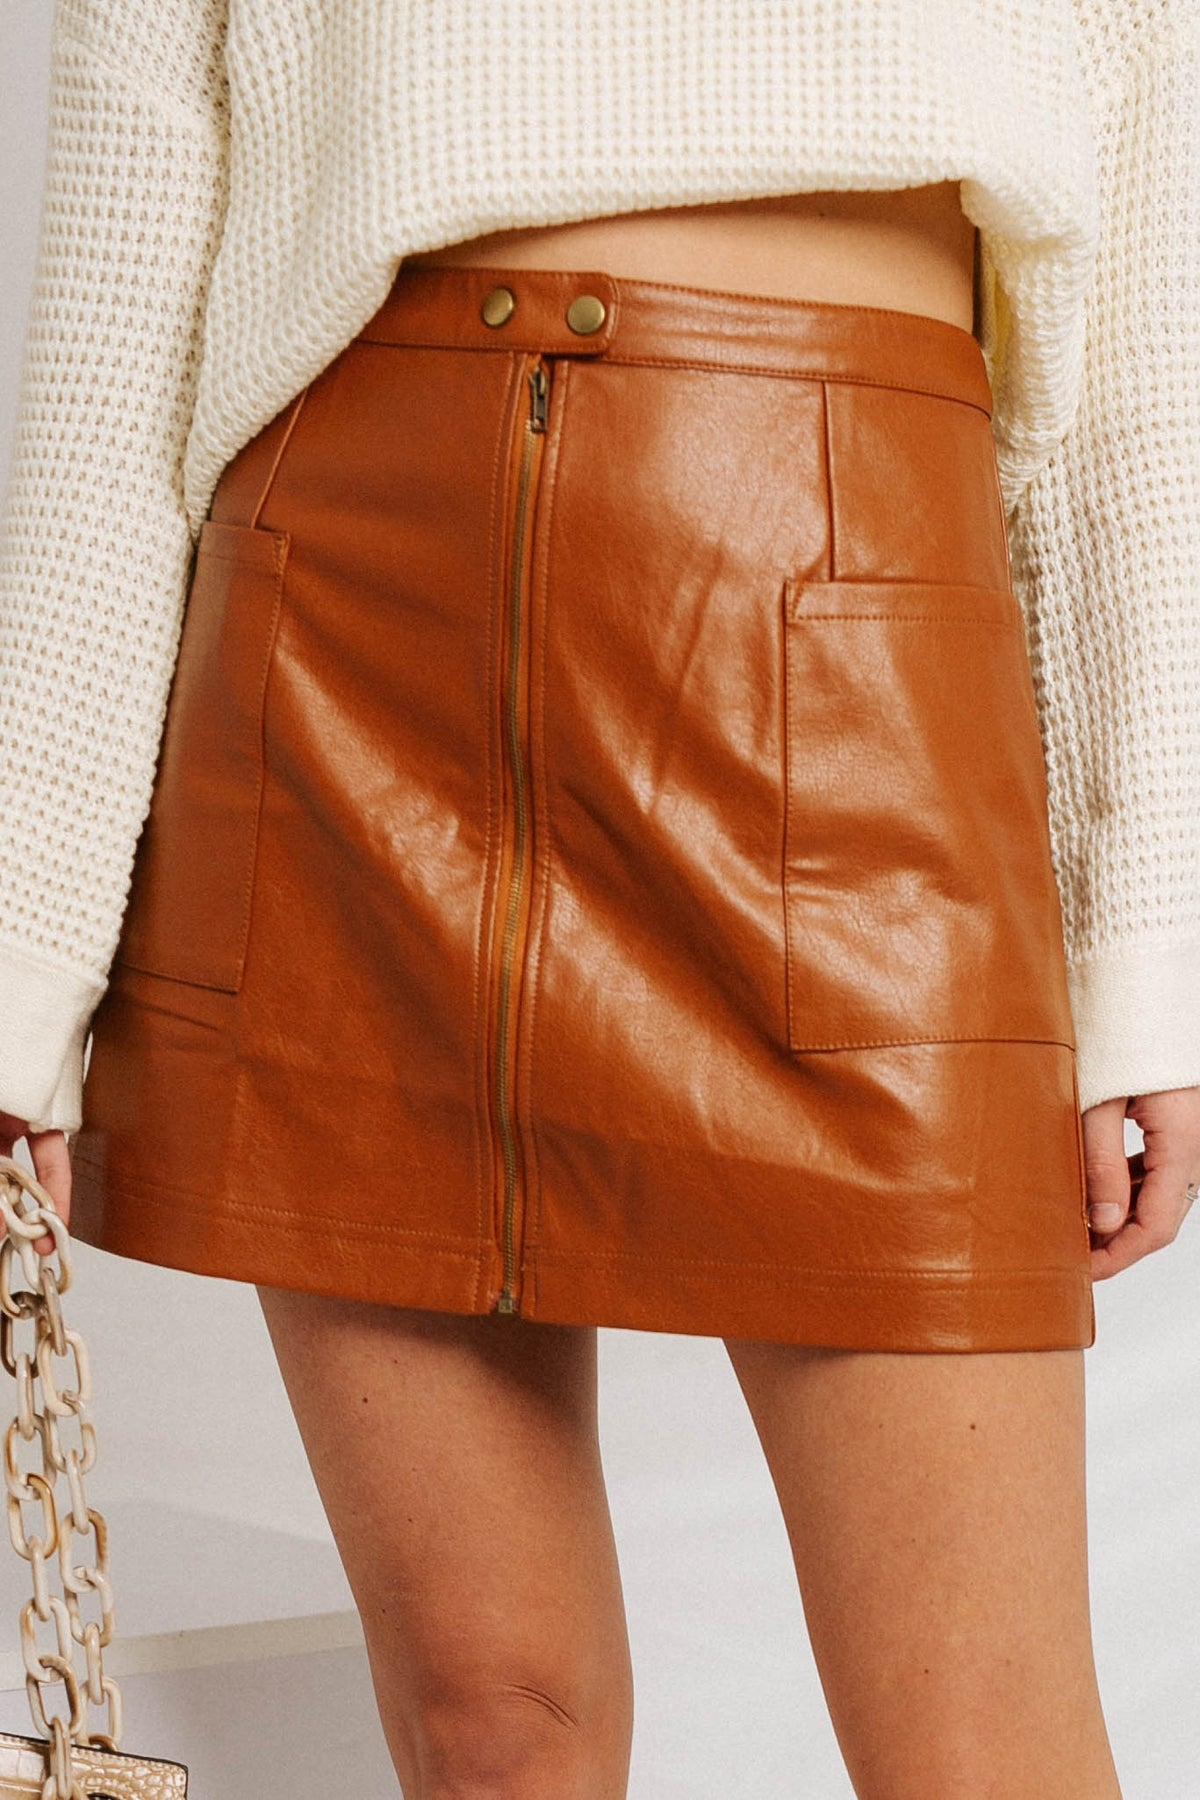 Empire State Of Mind Skirt